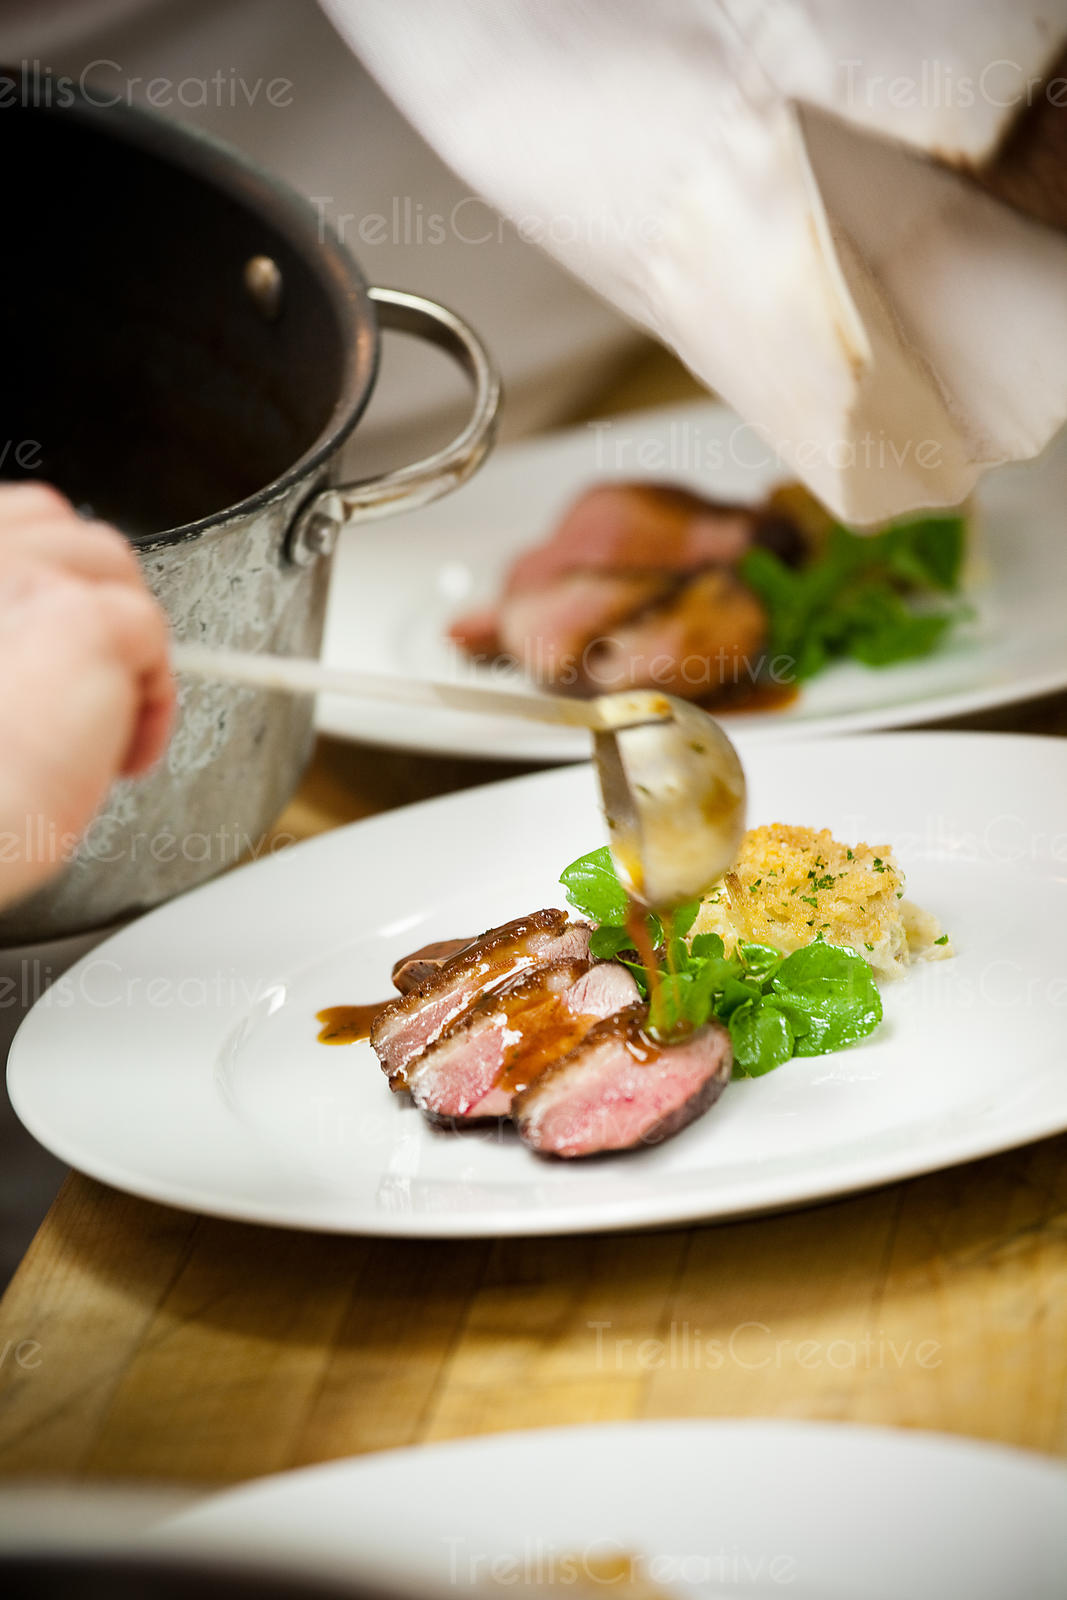 A chef pours au jus over a plate of meat in a busy restaurant kitchen